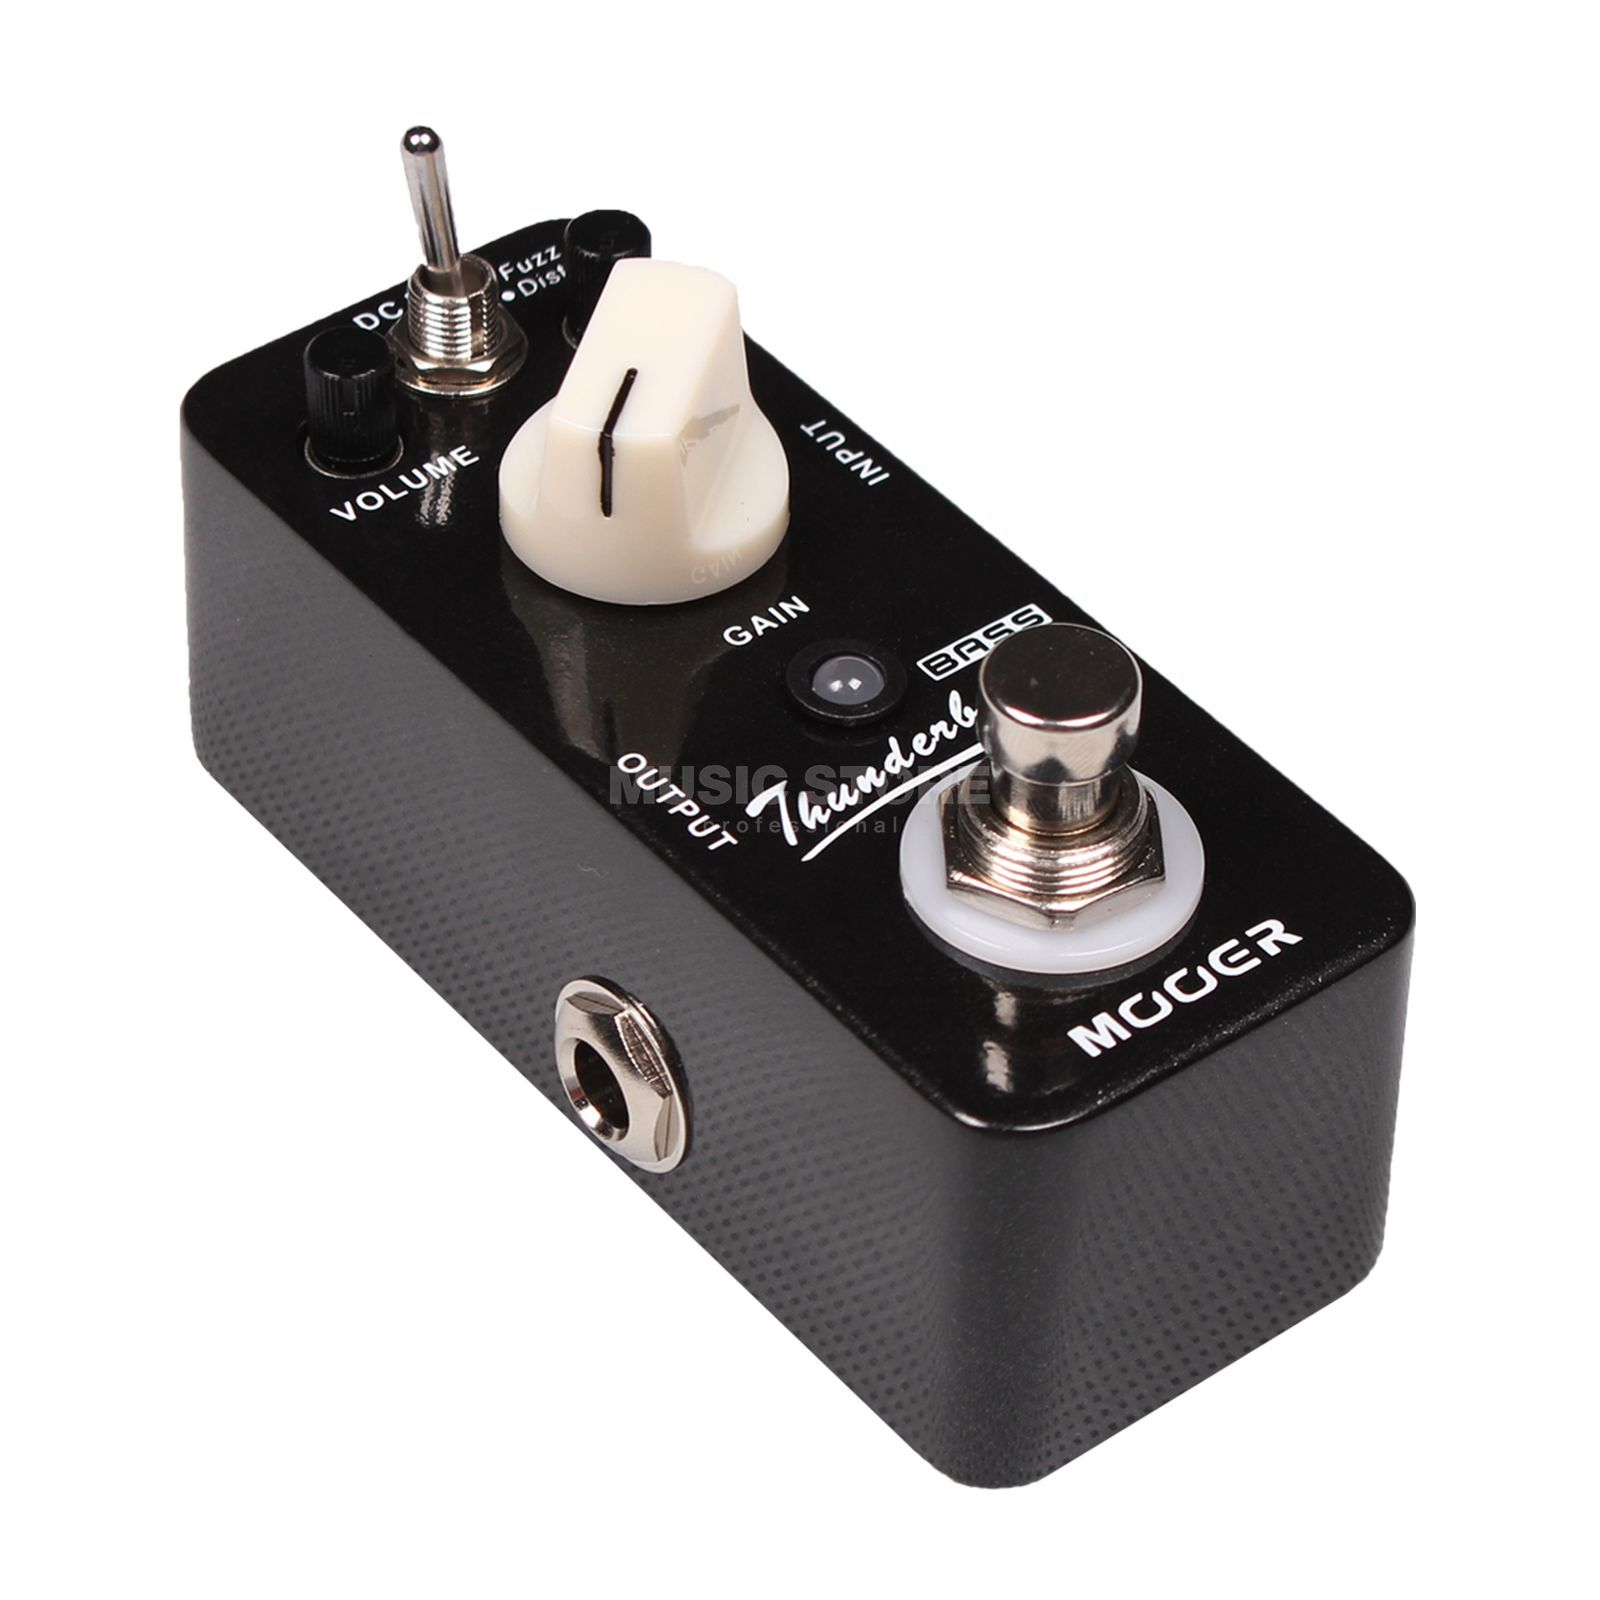 Mooer Audio Thunderball  Product Image